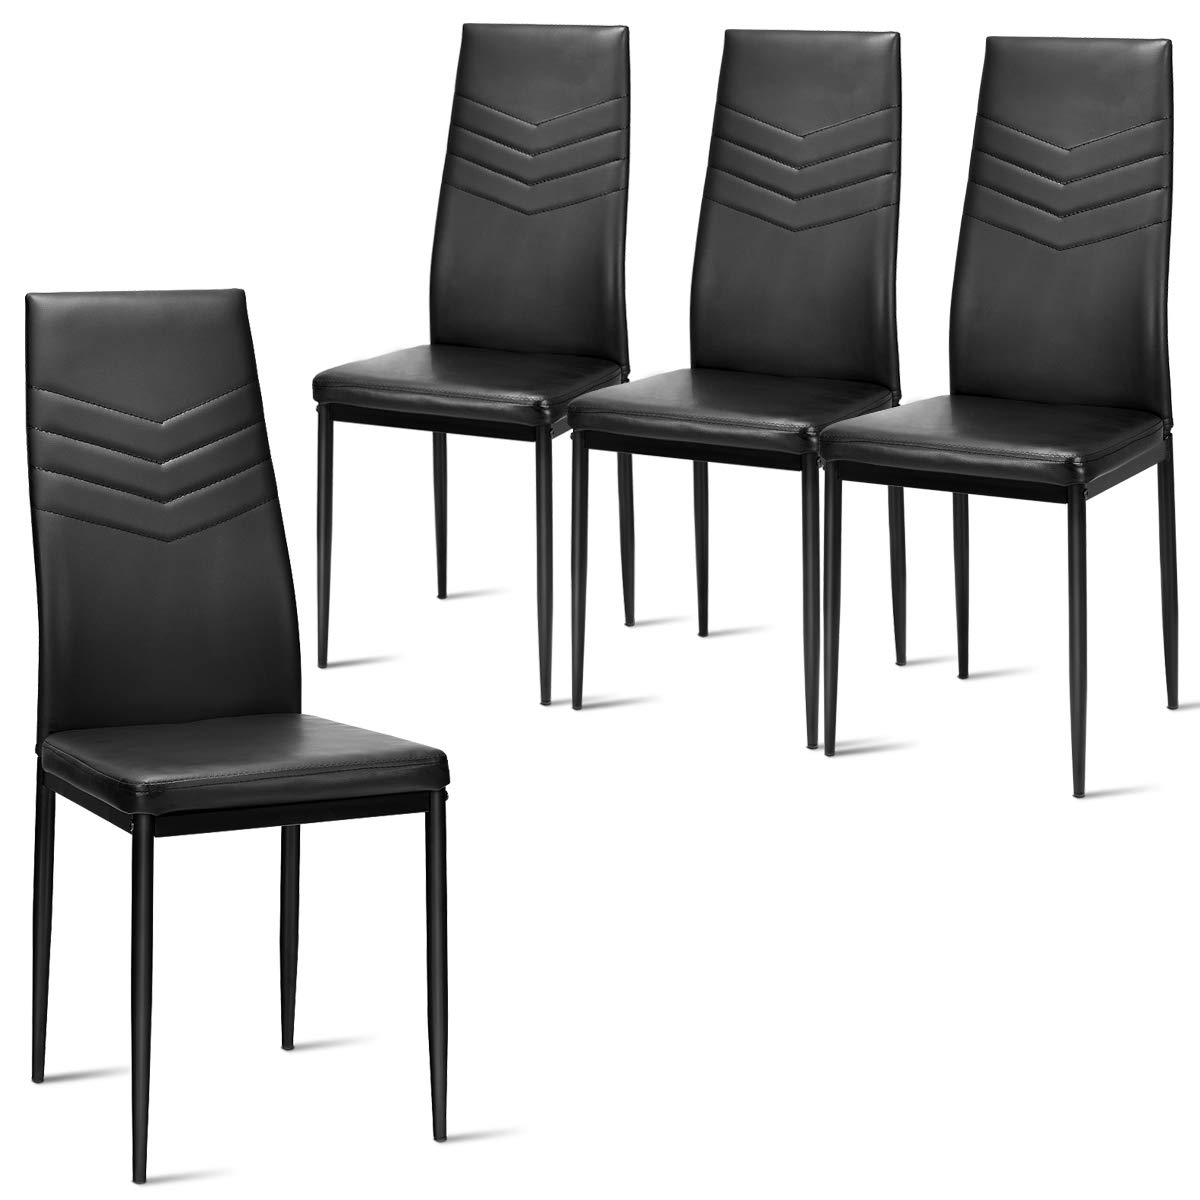 Giantex Set of 4 Dining Chairs Black with High Back, Upholstered Cushion, Sturdy Metal Frame, Powder Coated Tube Legs, PVC Leather, Soft, Light, Modern, Leisure, Home Kitchen Living Room Bed Black